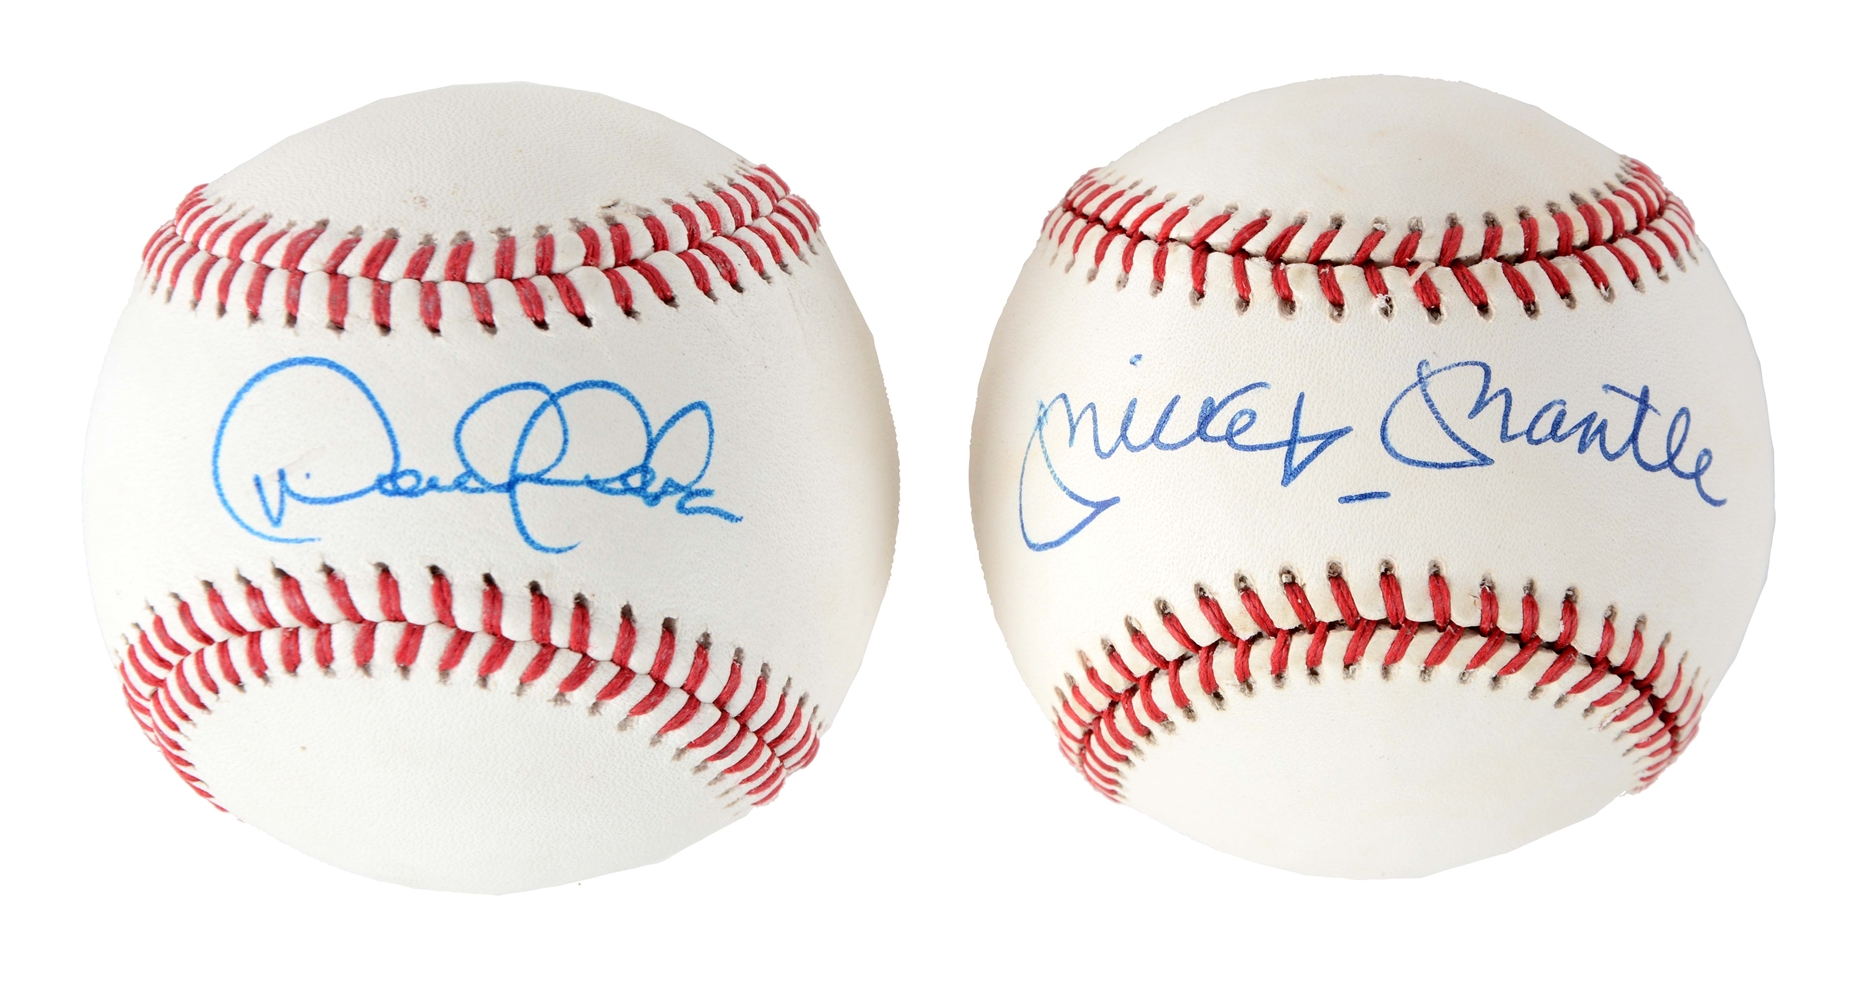 Lot of 2: Derek Jeter & Mickey Mantle Single Signed Baseballs.